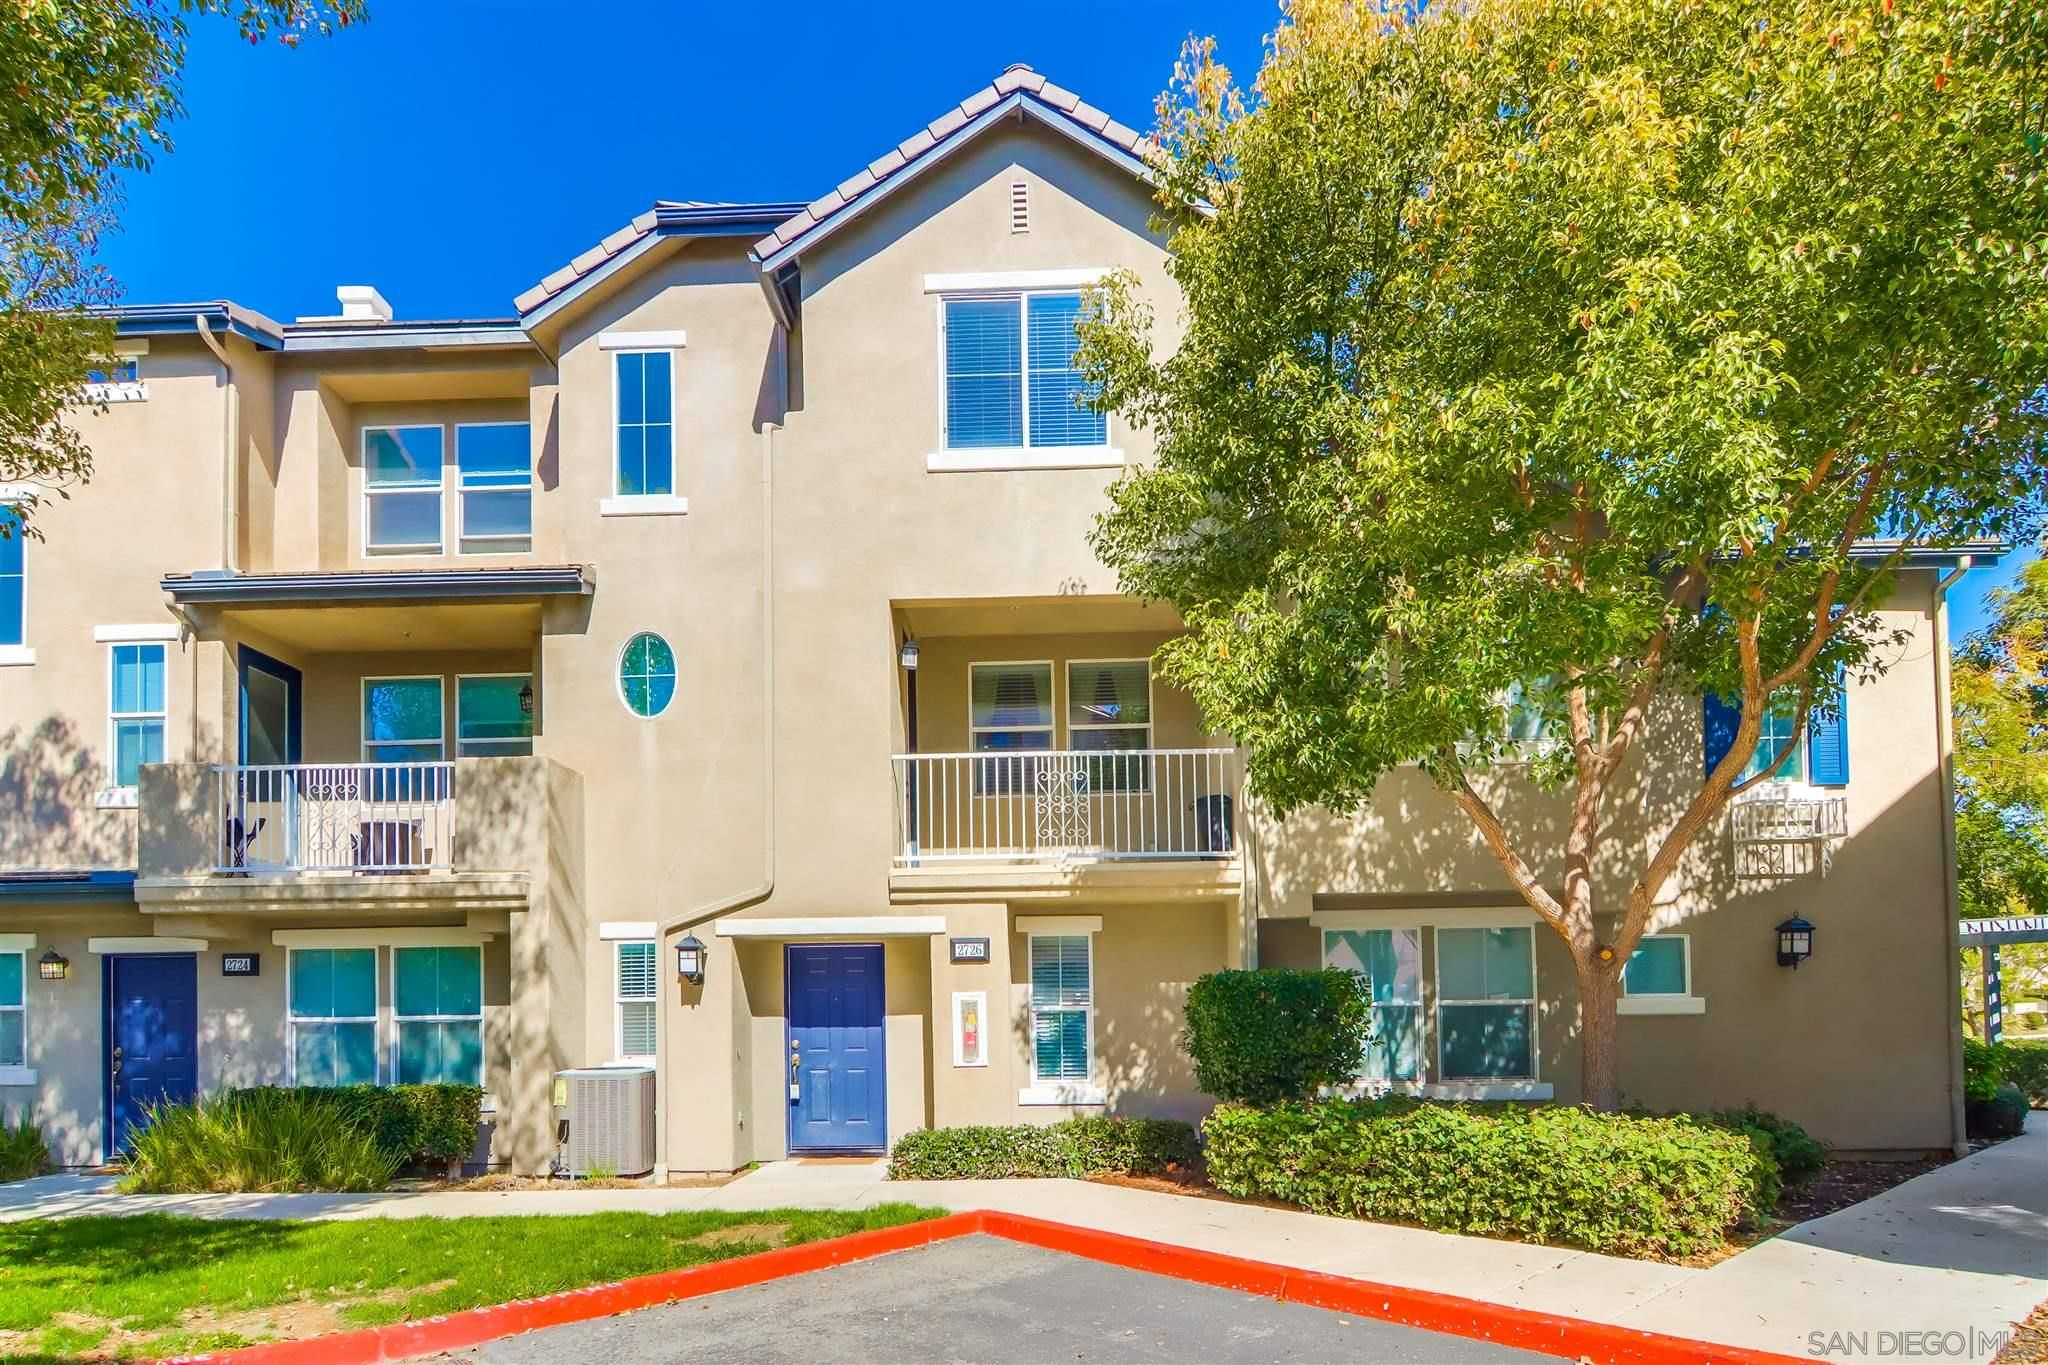 Main Photo: CHULA VISTA Townhouse for sale : 3 bedrooms : 2726 Hazelnut Ct